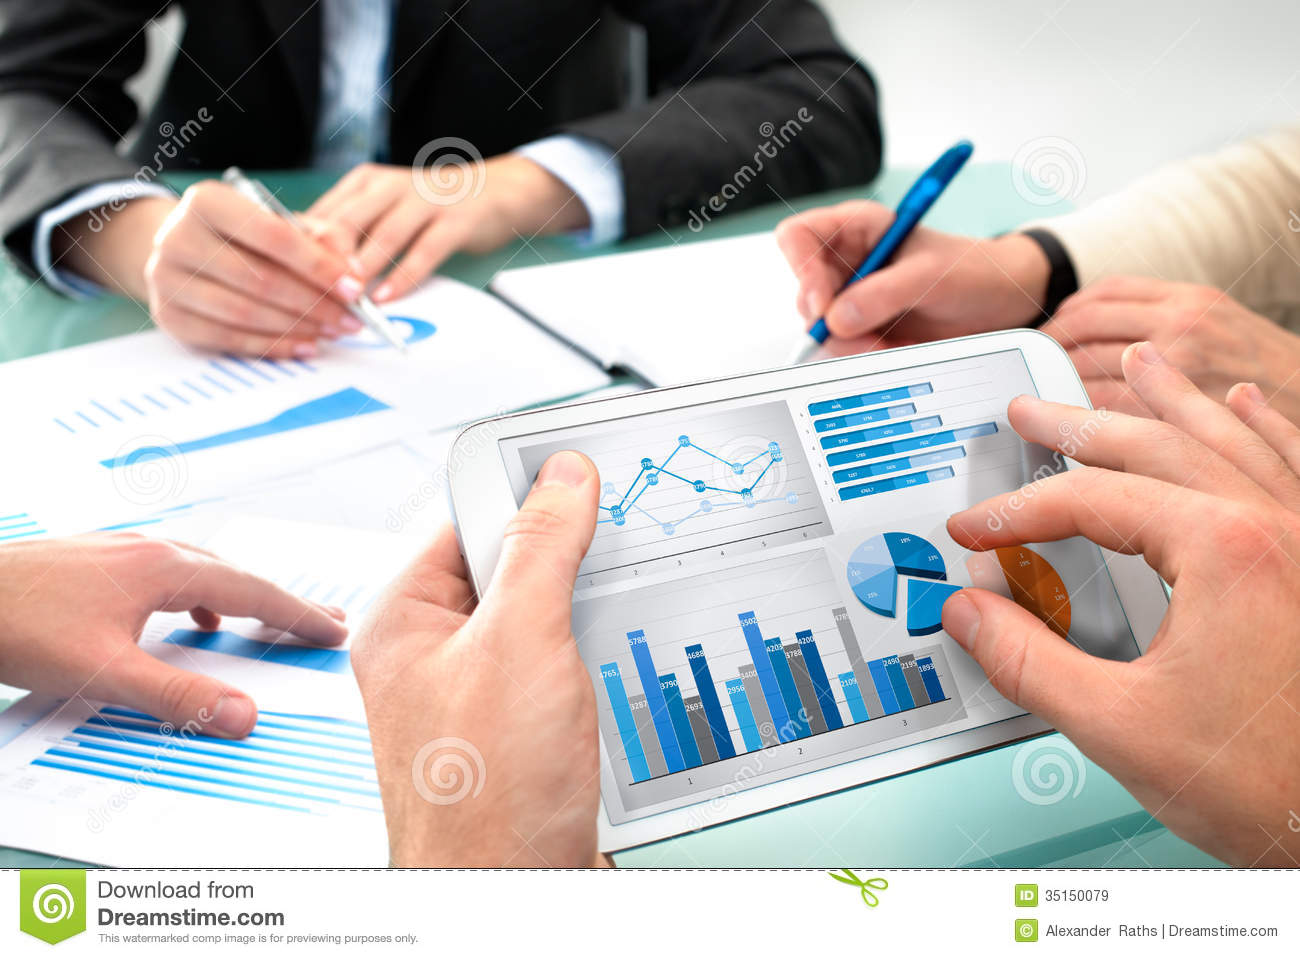 business meeting royalty free stock images - Business Documents